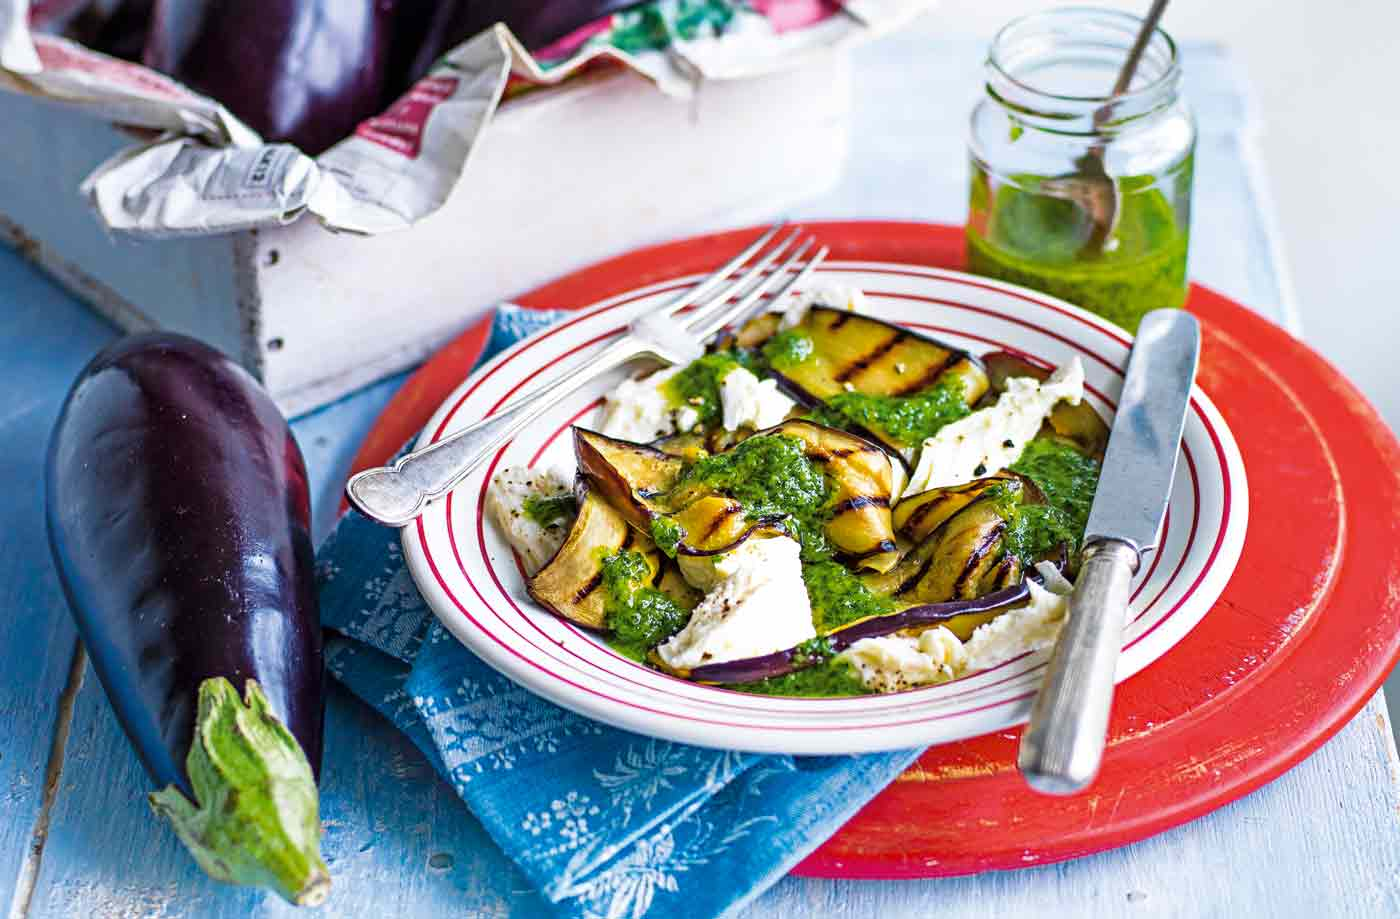 Grilled aubergine with almond and parsley pesto